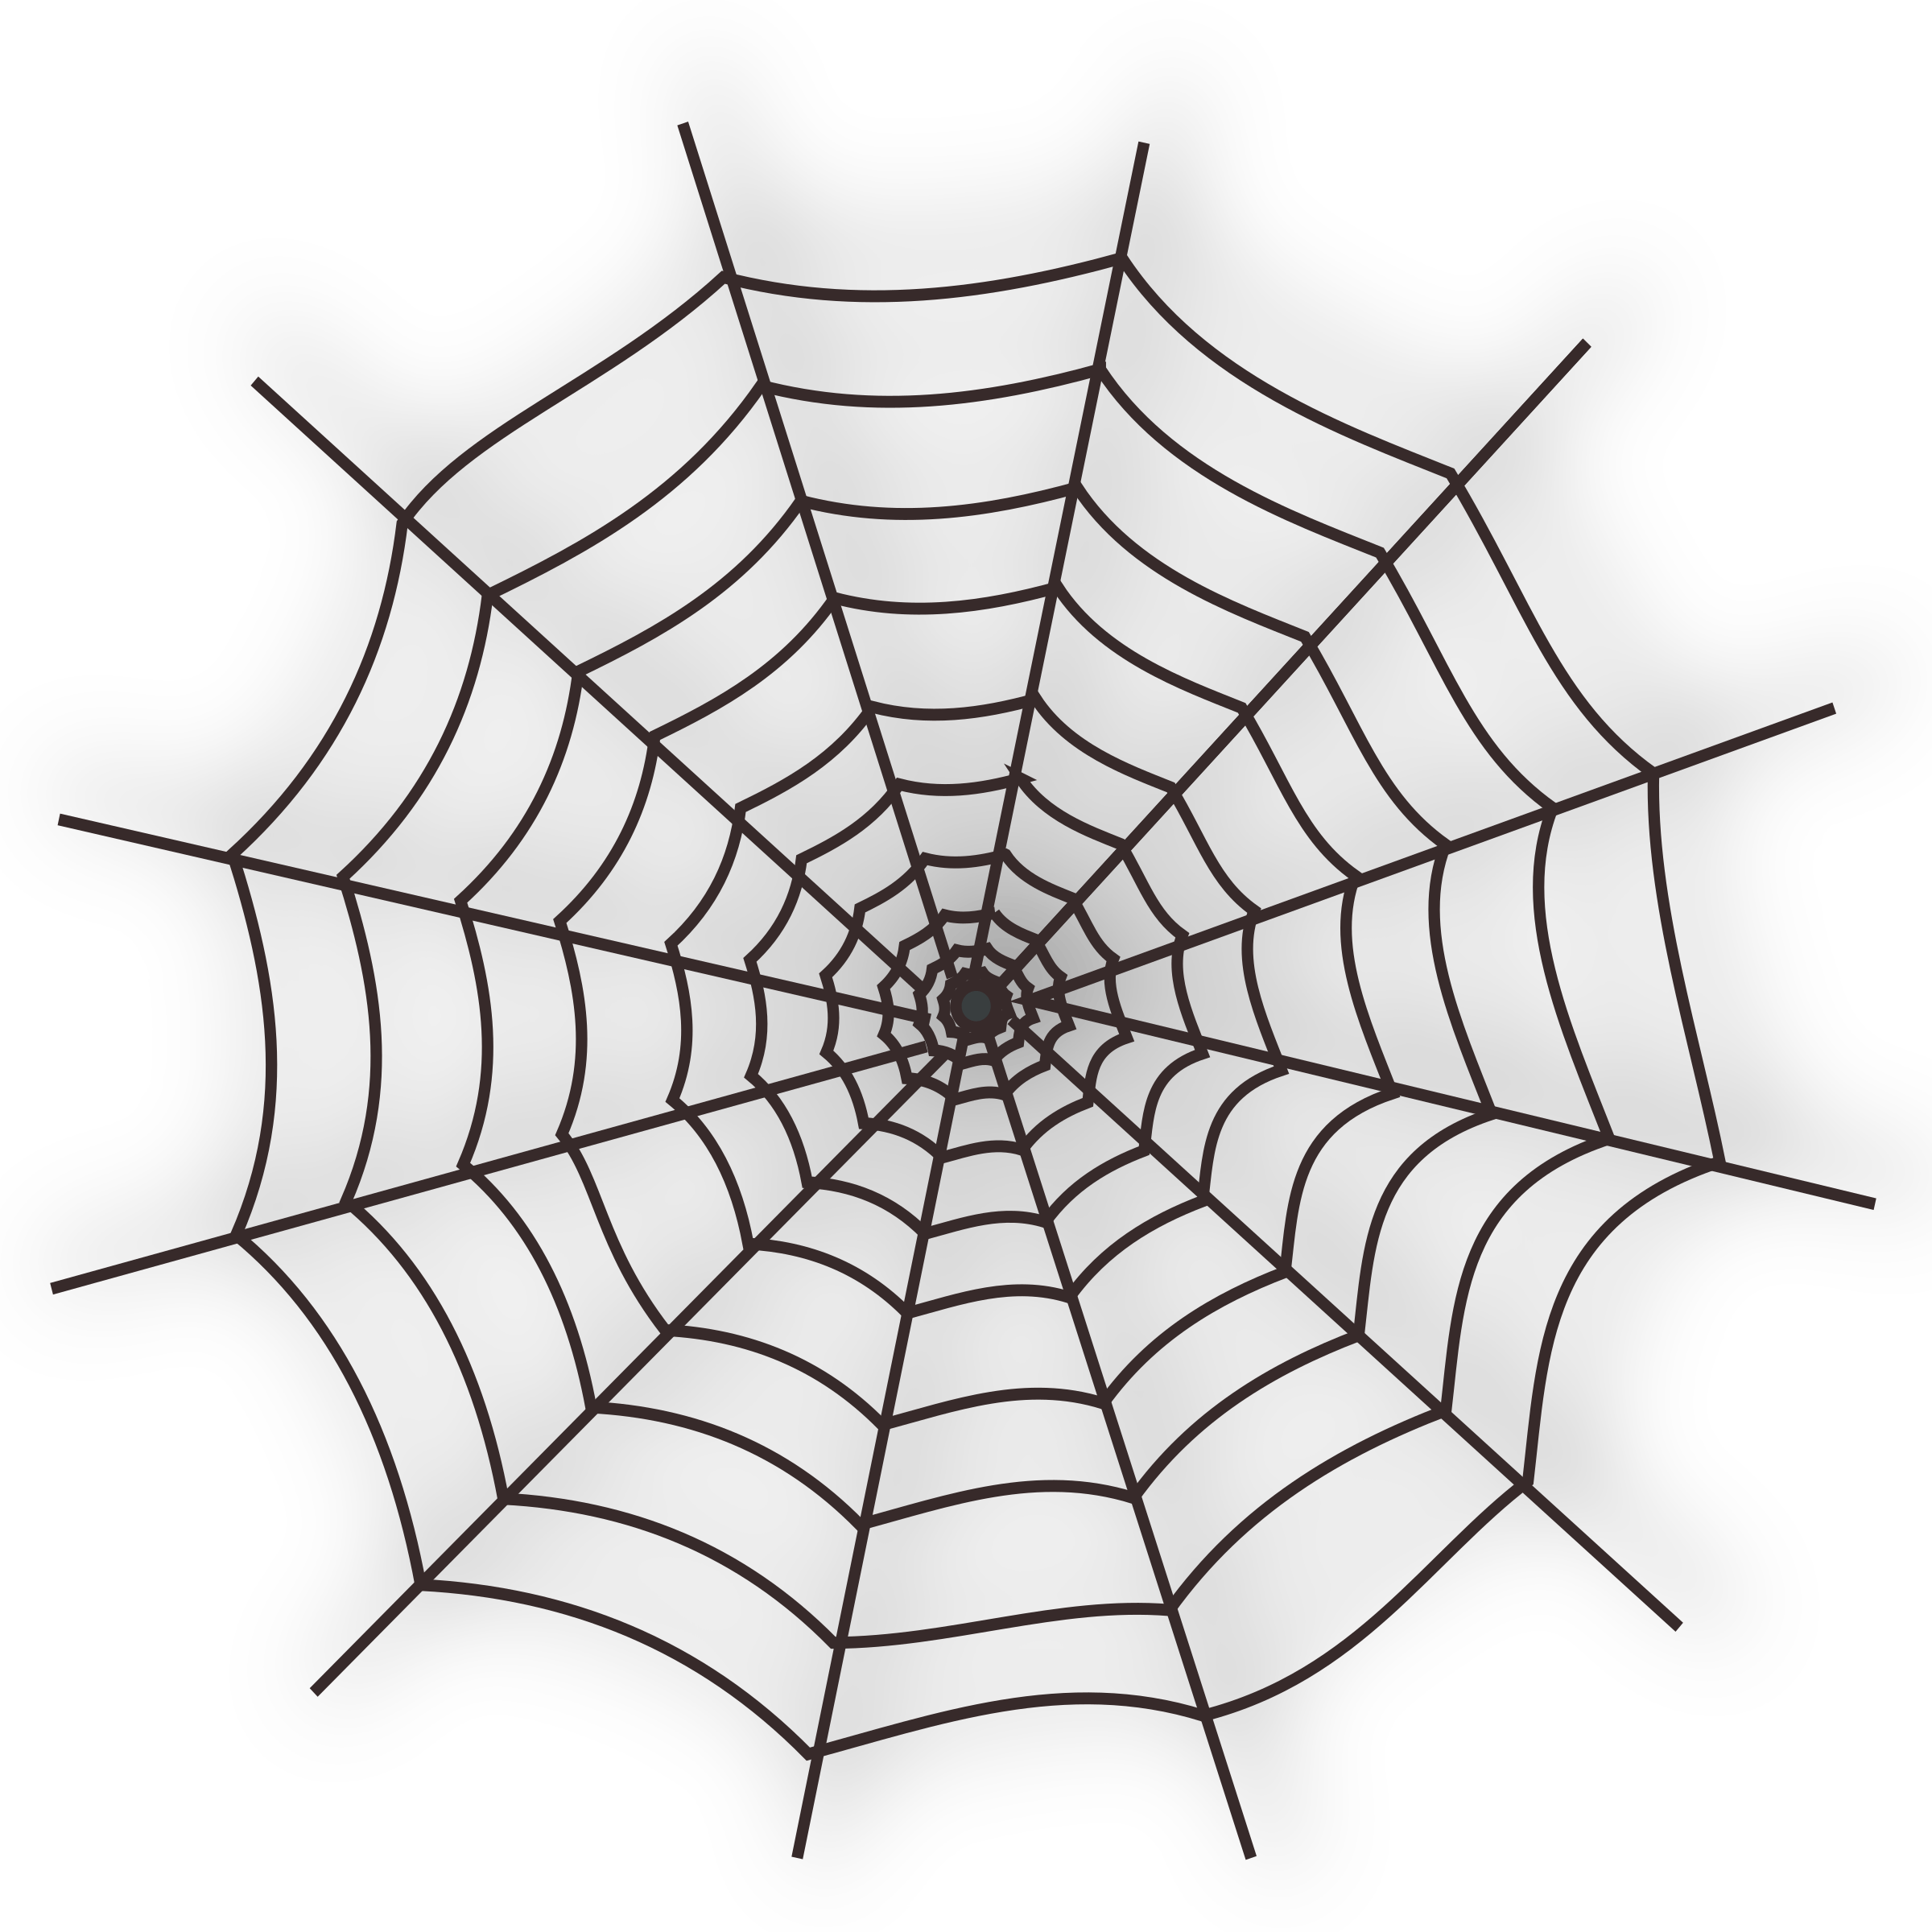 svg transparent download Spider web clipart black and white. Halloween icon big image